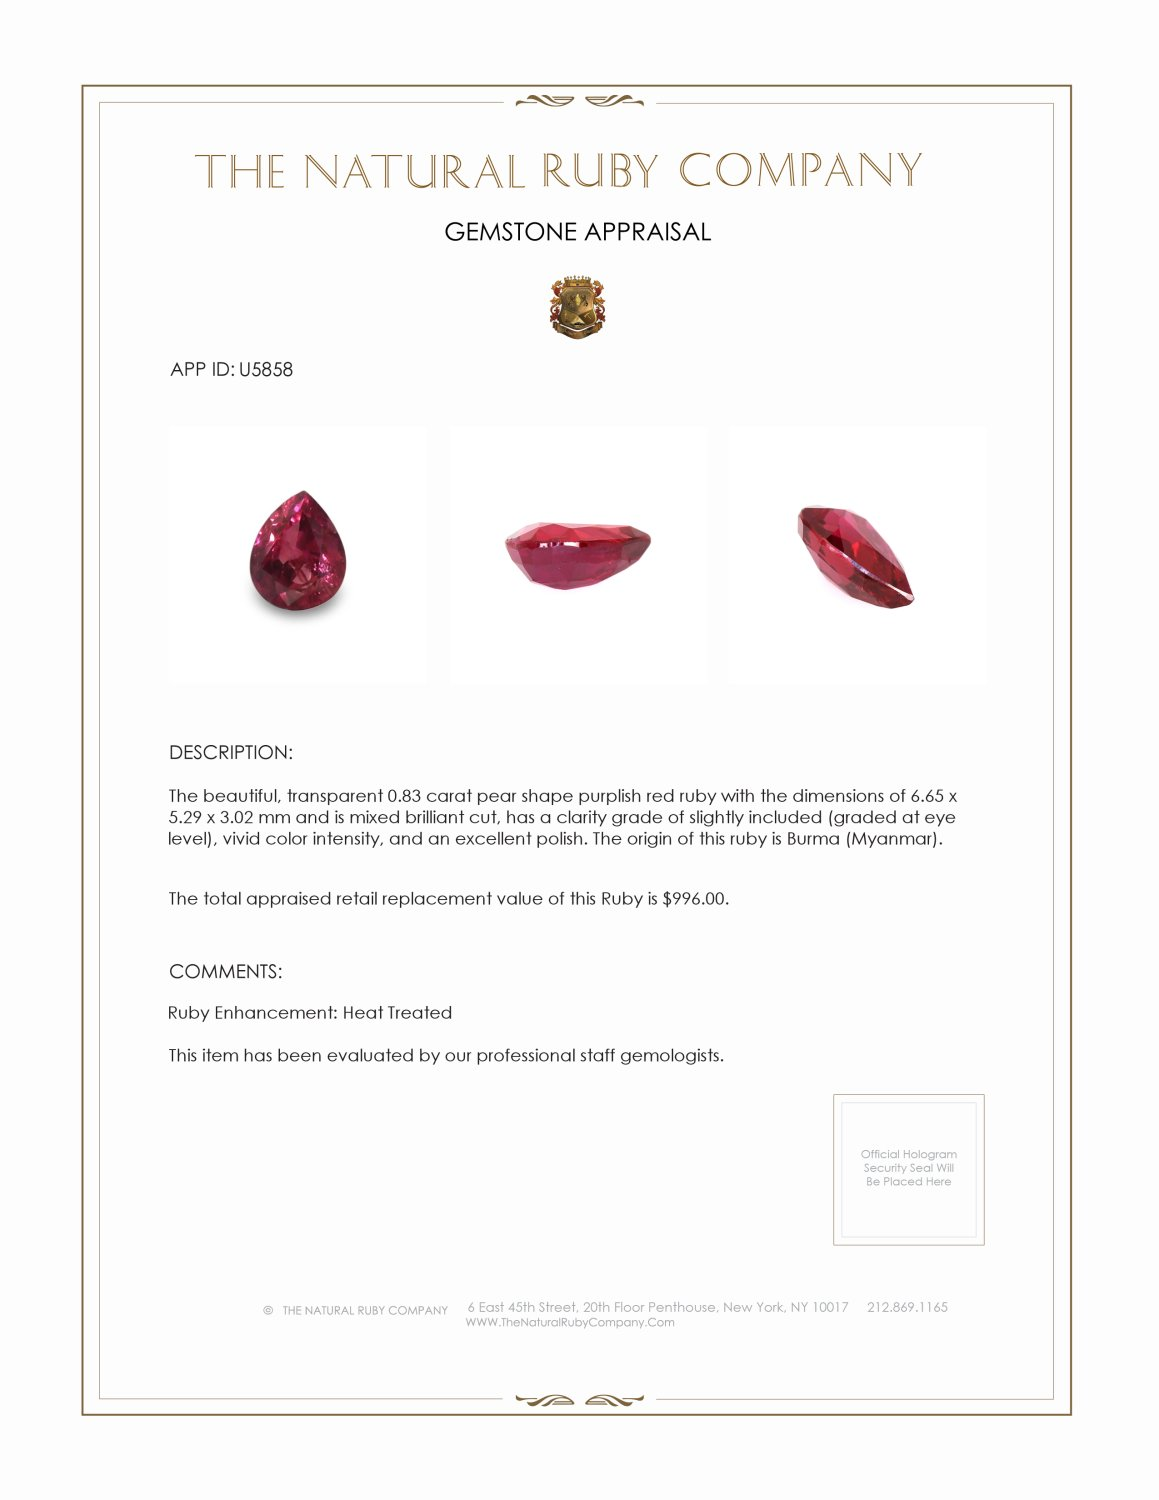 Natural Ruby U5858 Certification 3